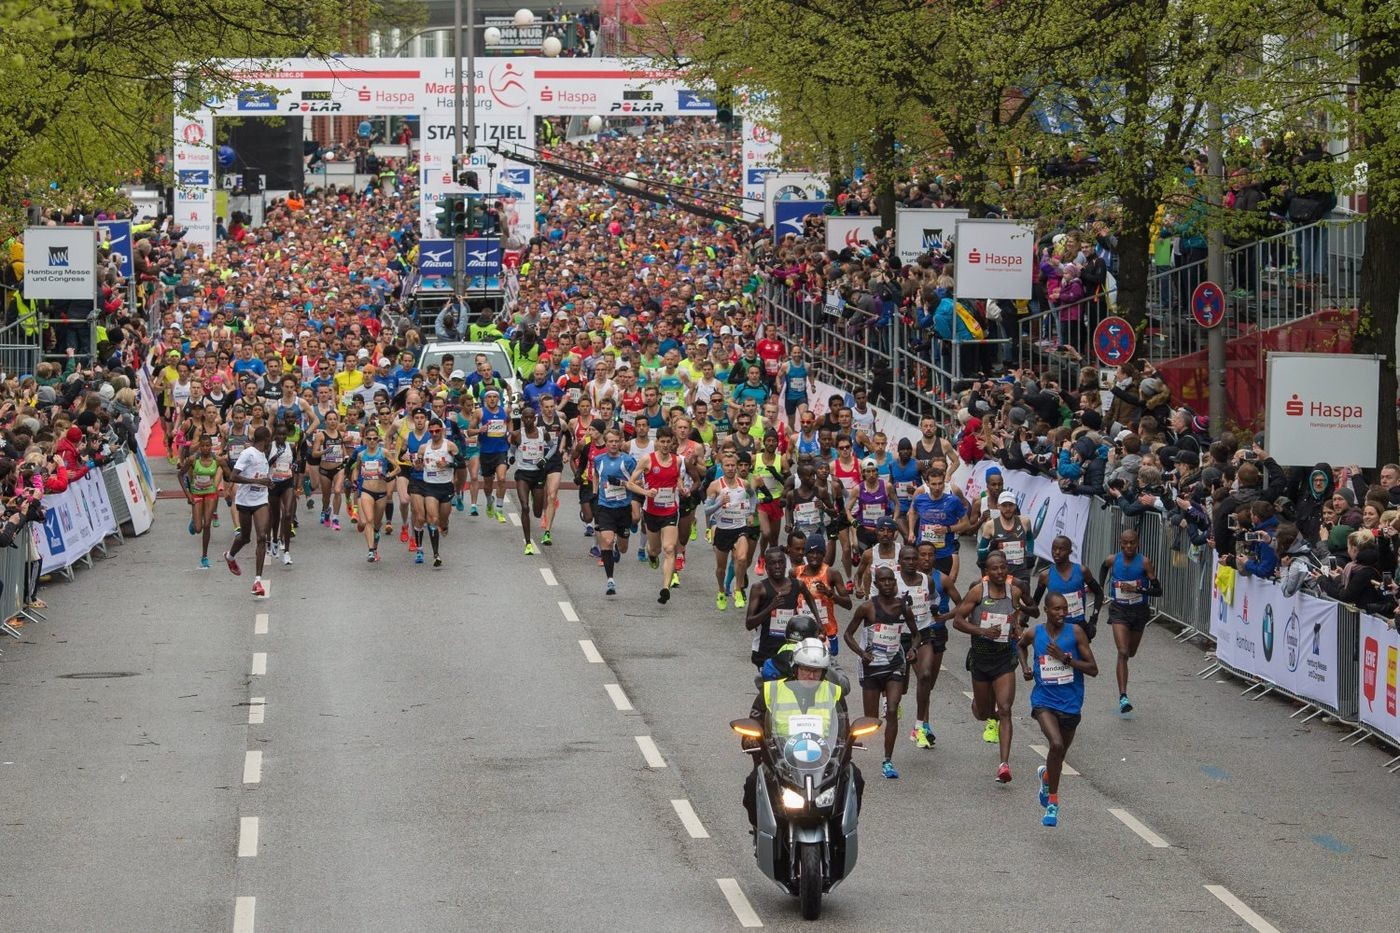 The postponed Haspa Marathon Hamburg will be allowed to take place with 10,000 runners, both elite and mass races